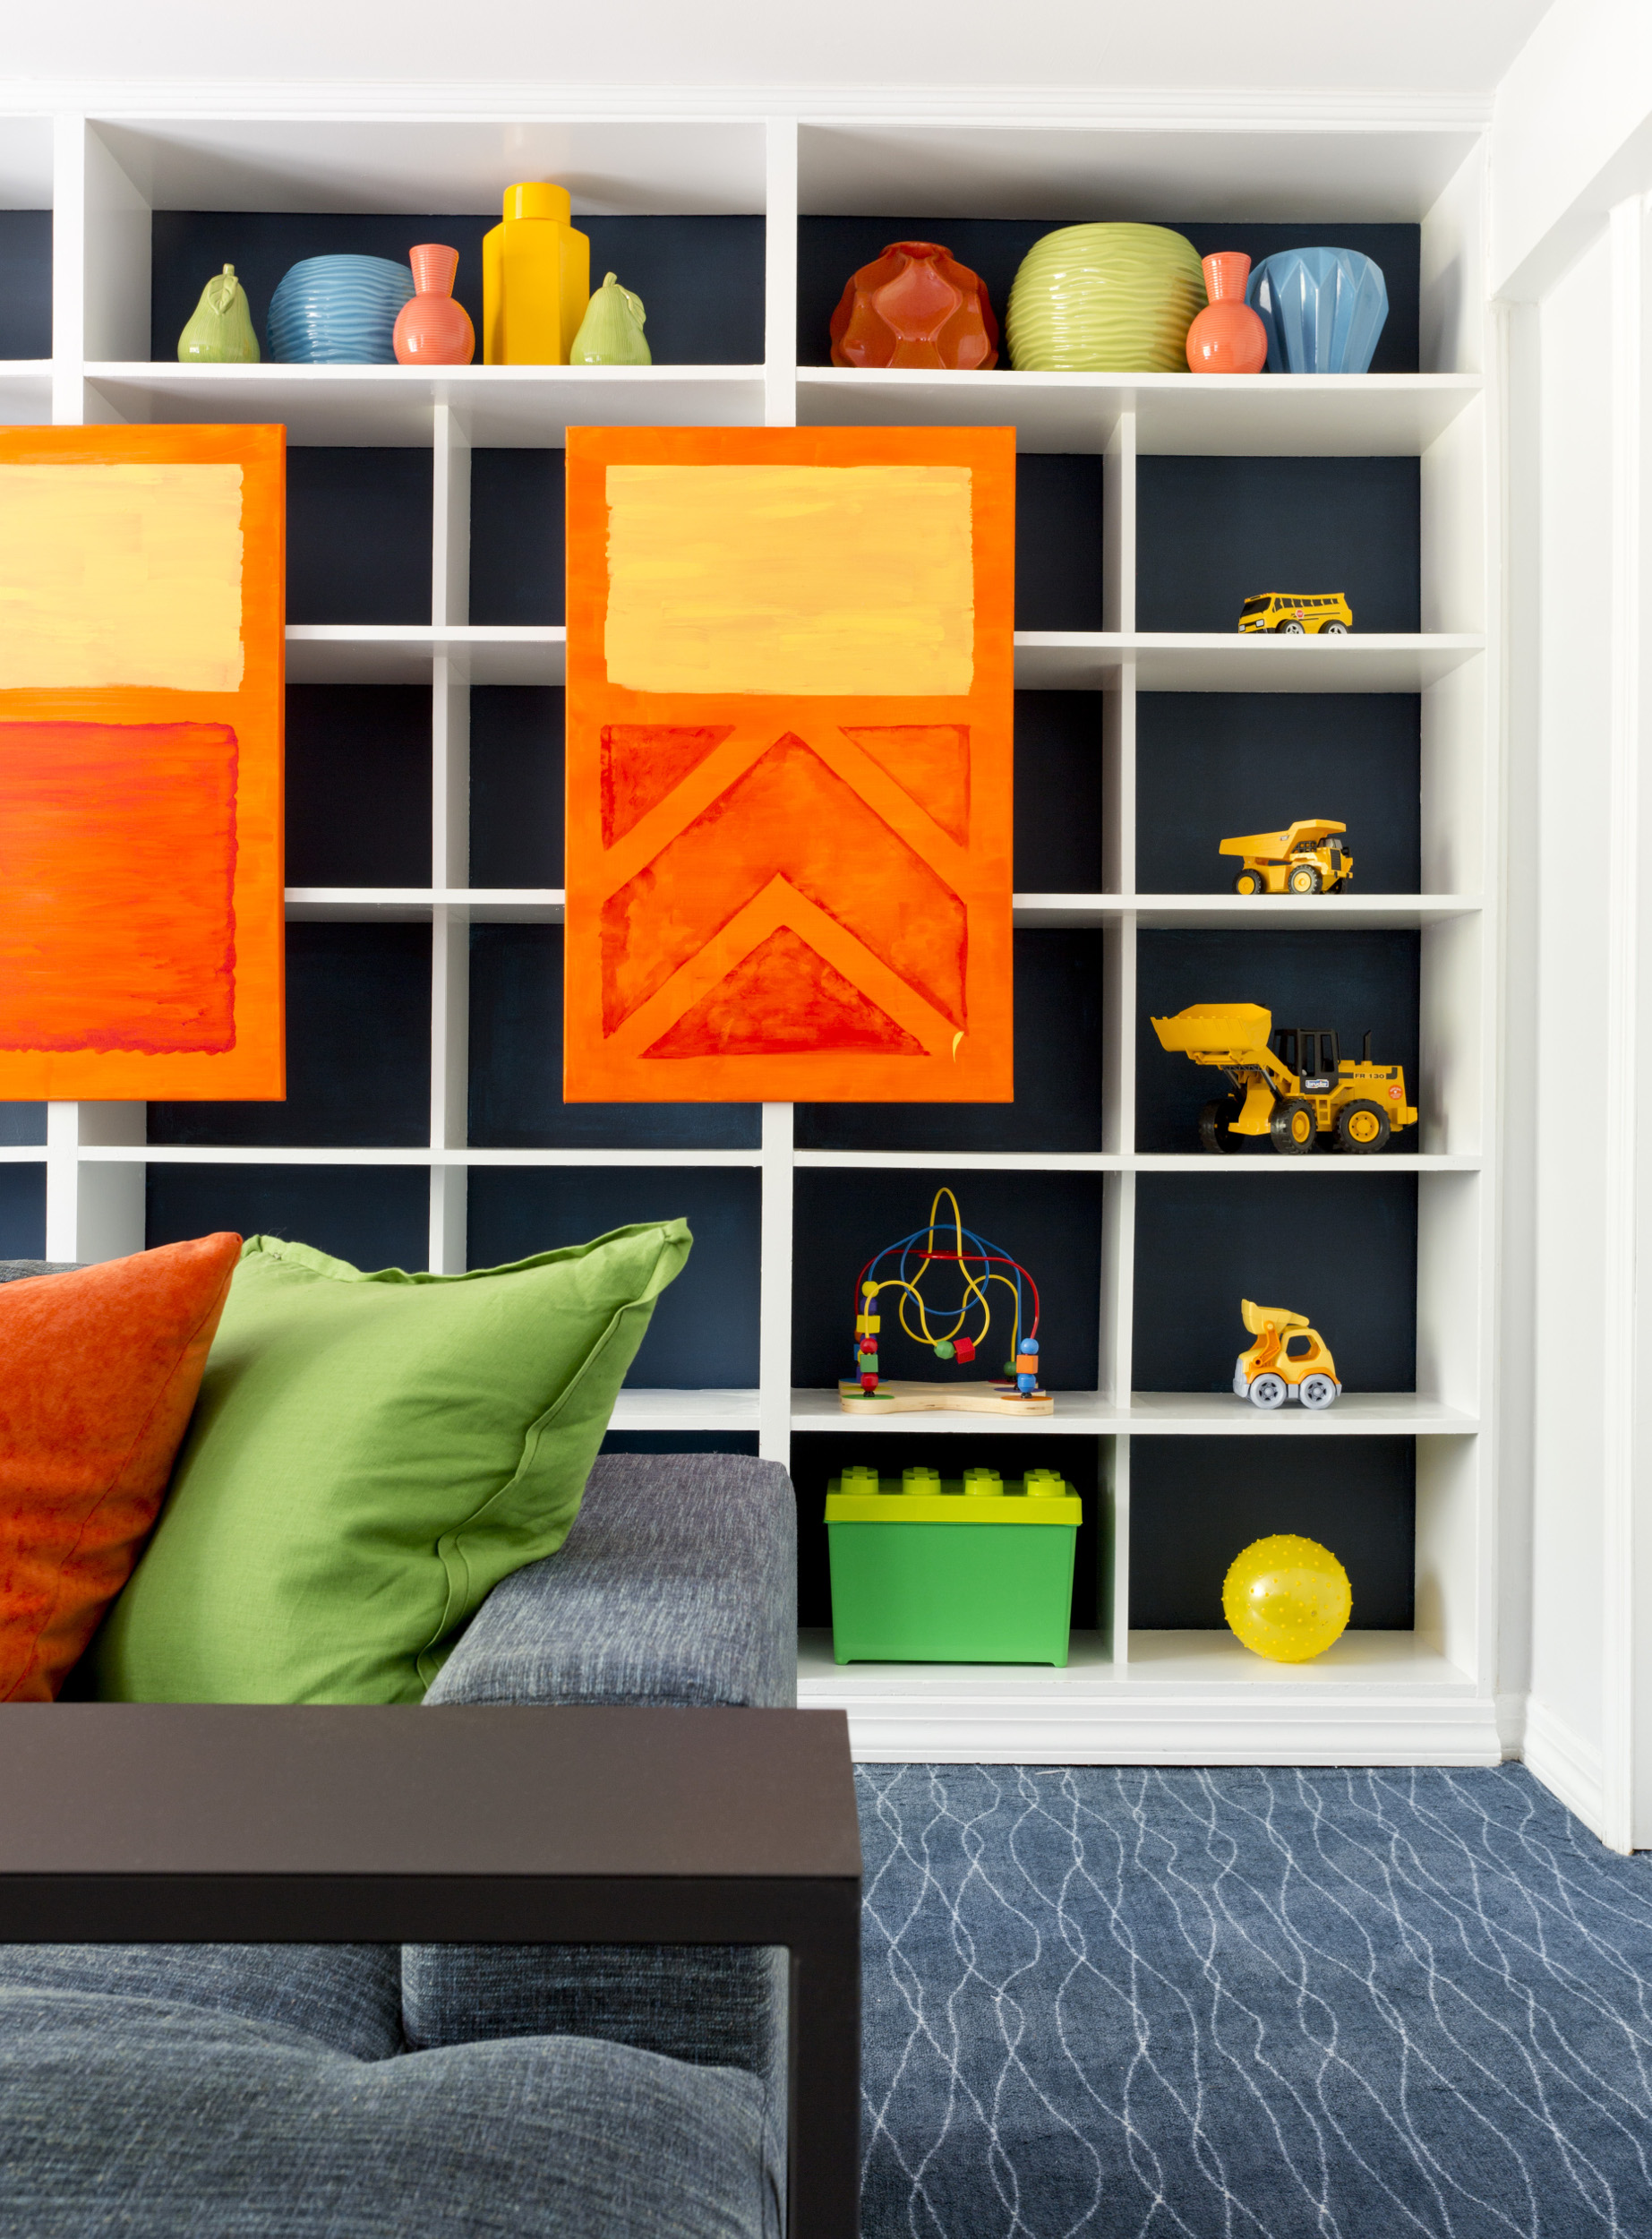 Kids Toy Room Decoration Ideas Caroline Kopp.jpg